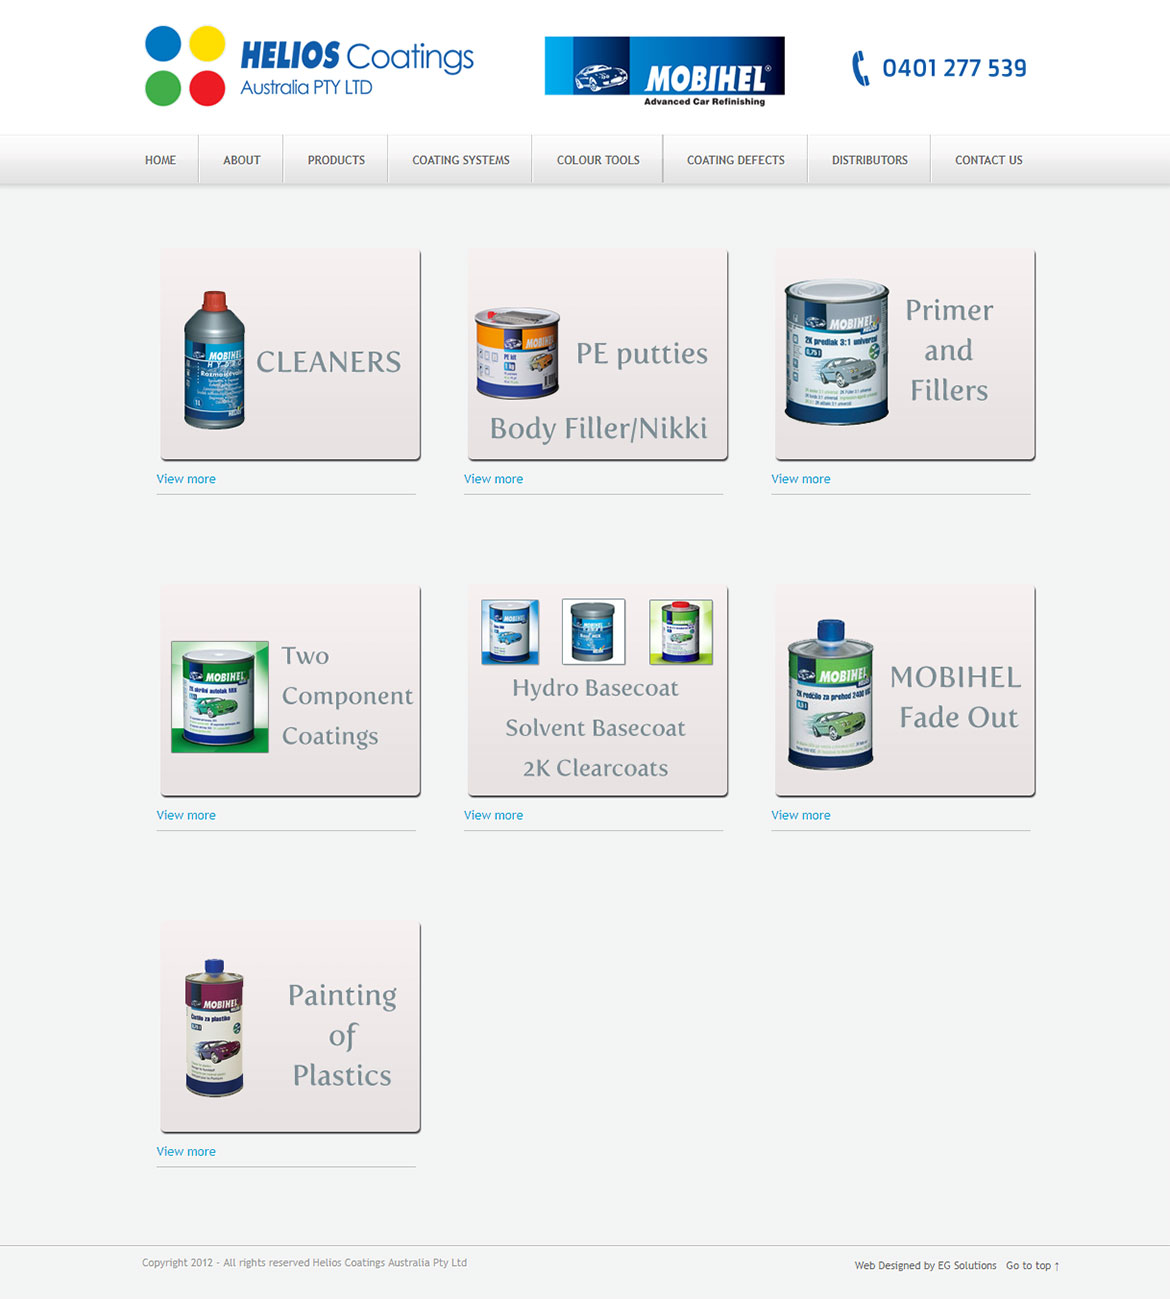 Helios Coatings - Product Page